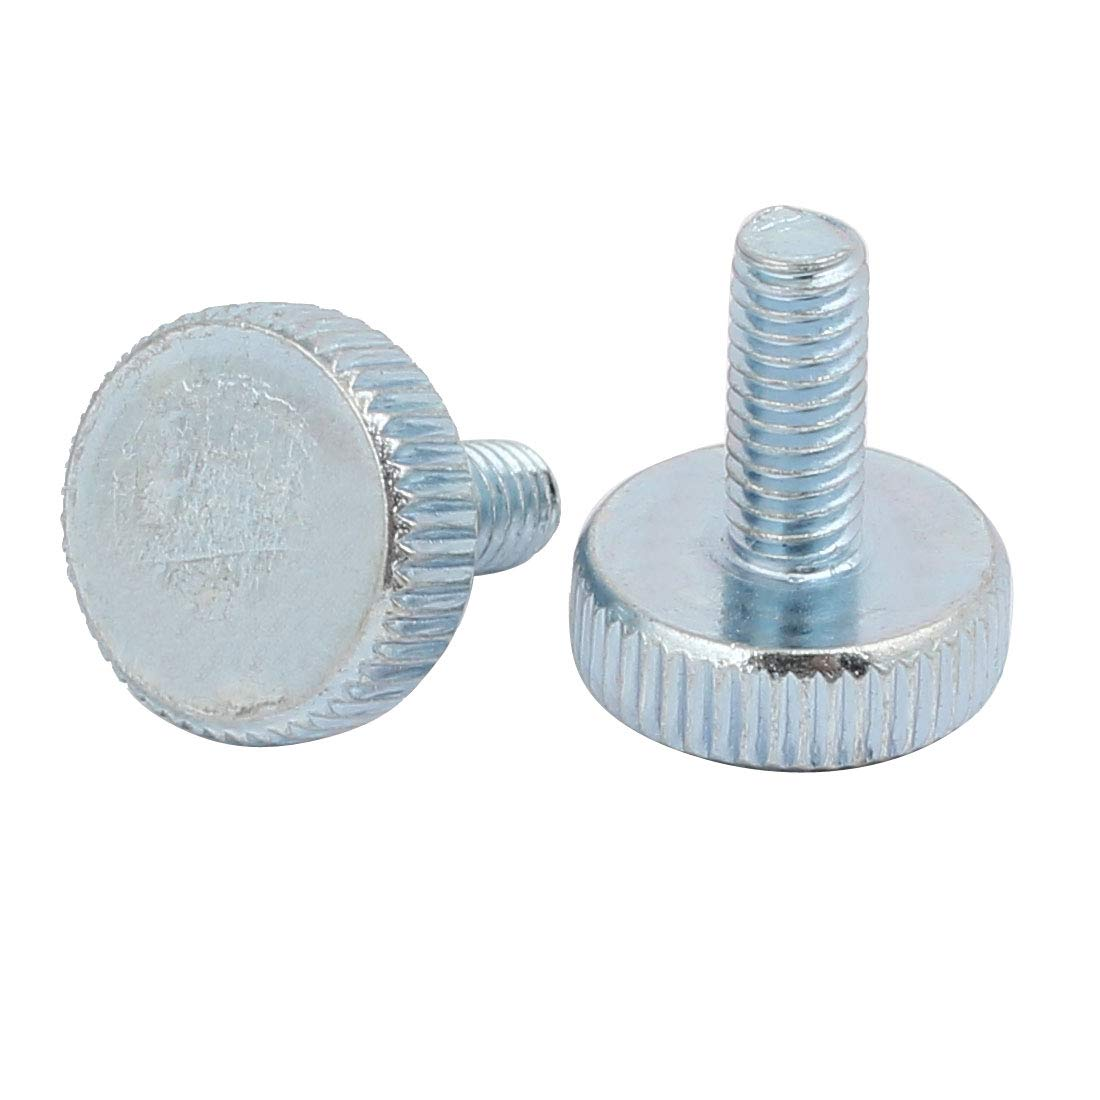 sourcing map M4x10mm zingu/é filetage T/ête Ronde Vis molet/ée bleu argent 25pcs